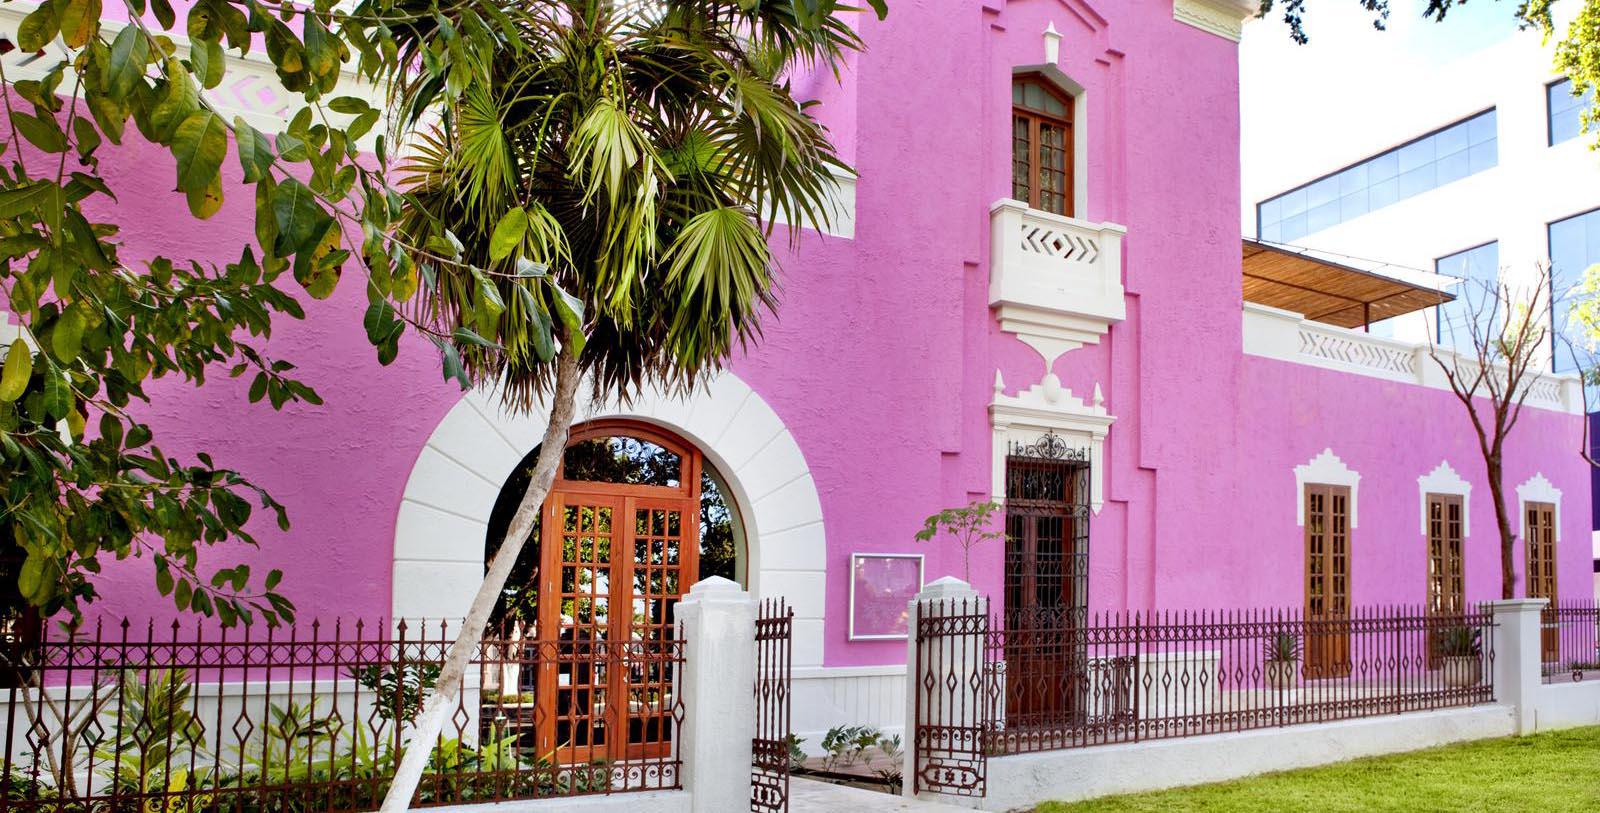 Image of Hotel Front Entrance at Rosas & Xocolate Boutique Hotel, 1909, Member of Historic Hotels Worldwide, in Merida, Yucatan, Mexico, Overview